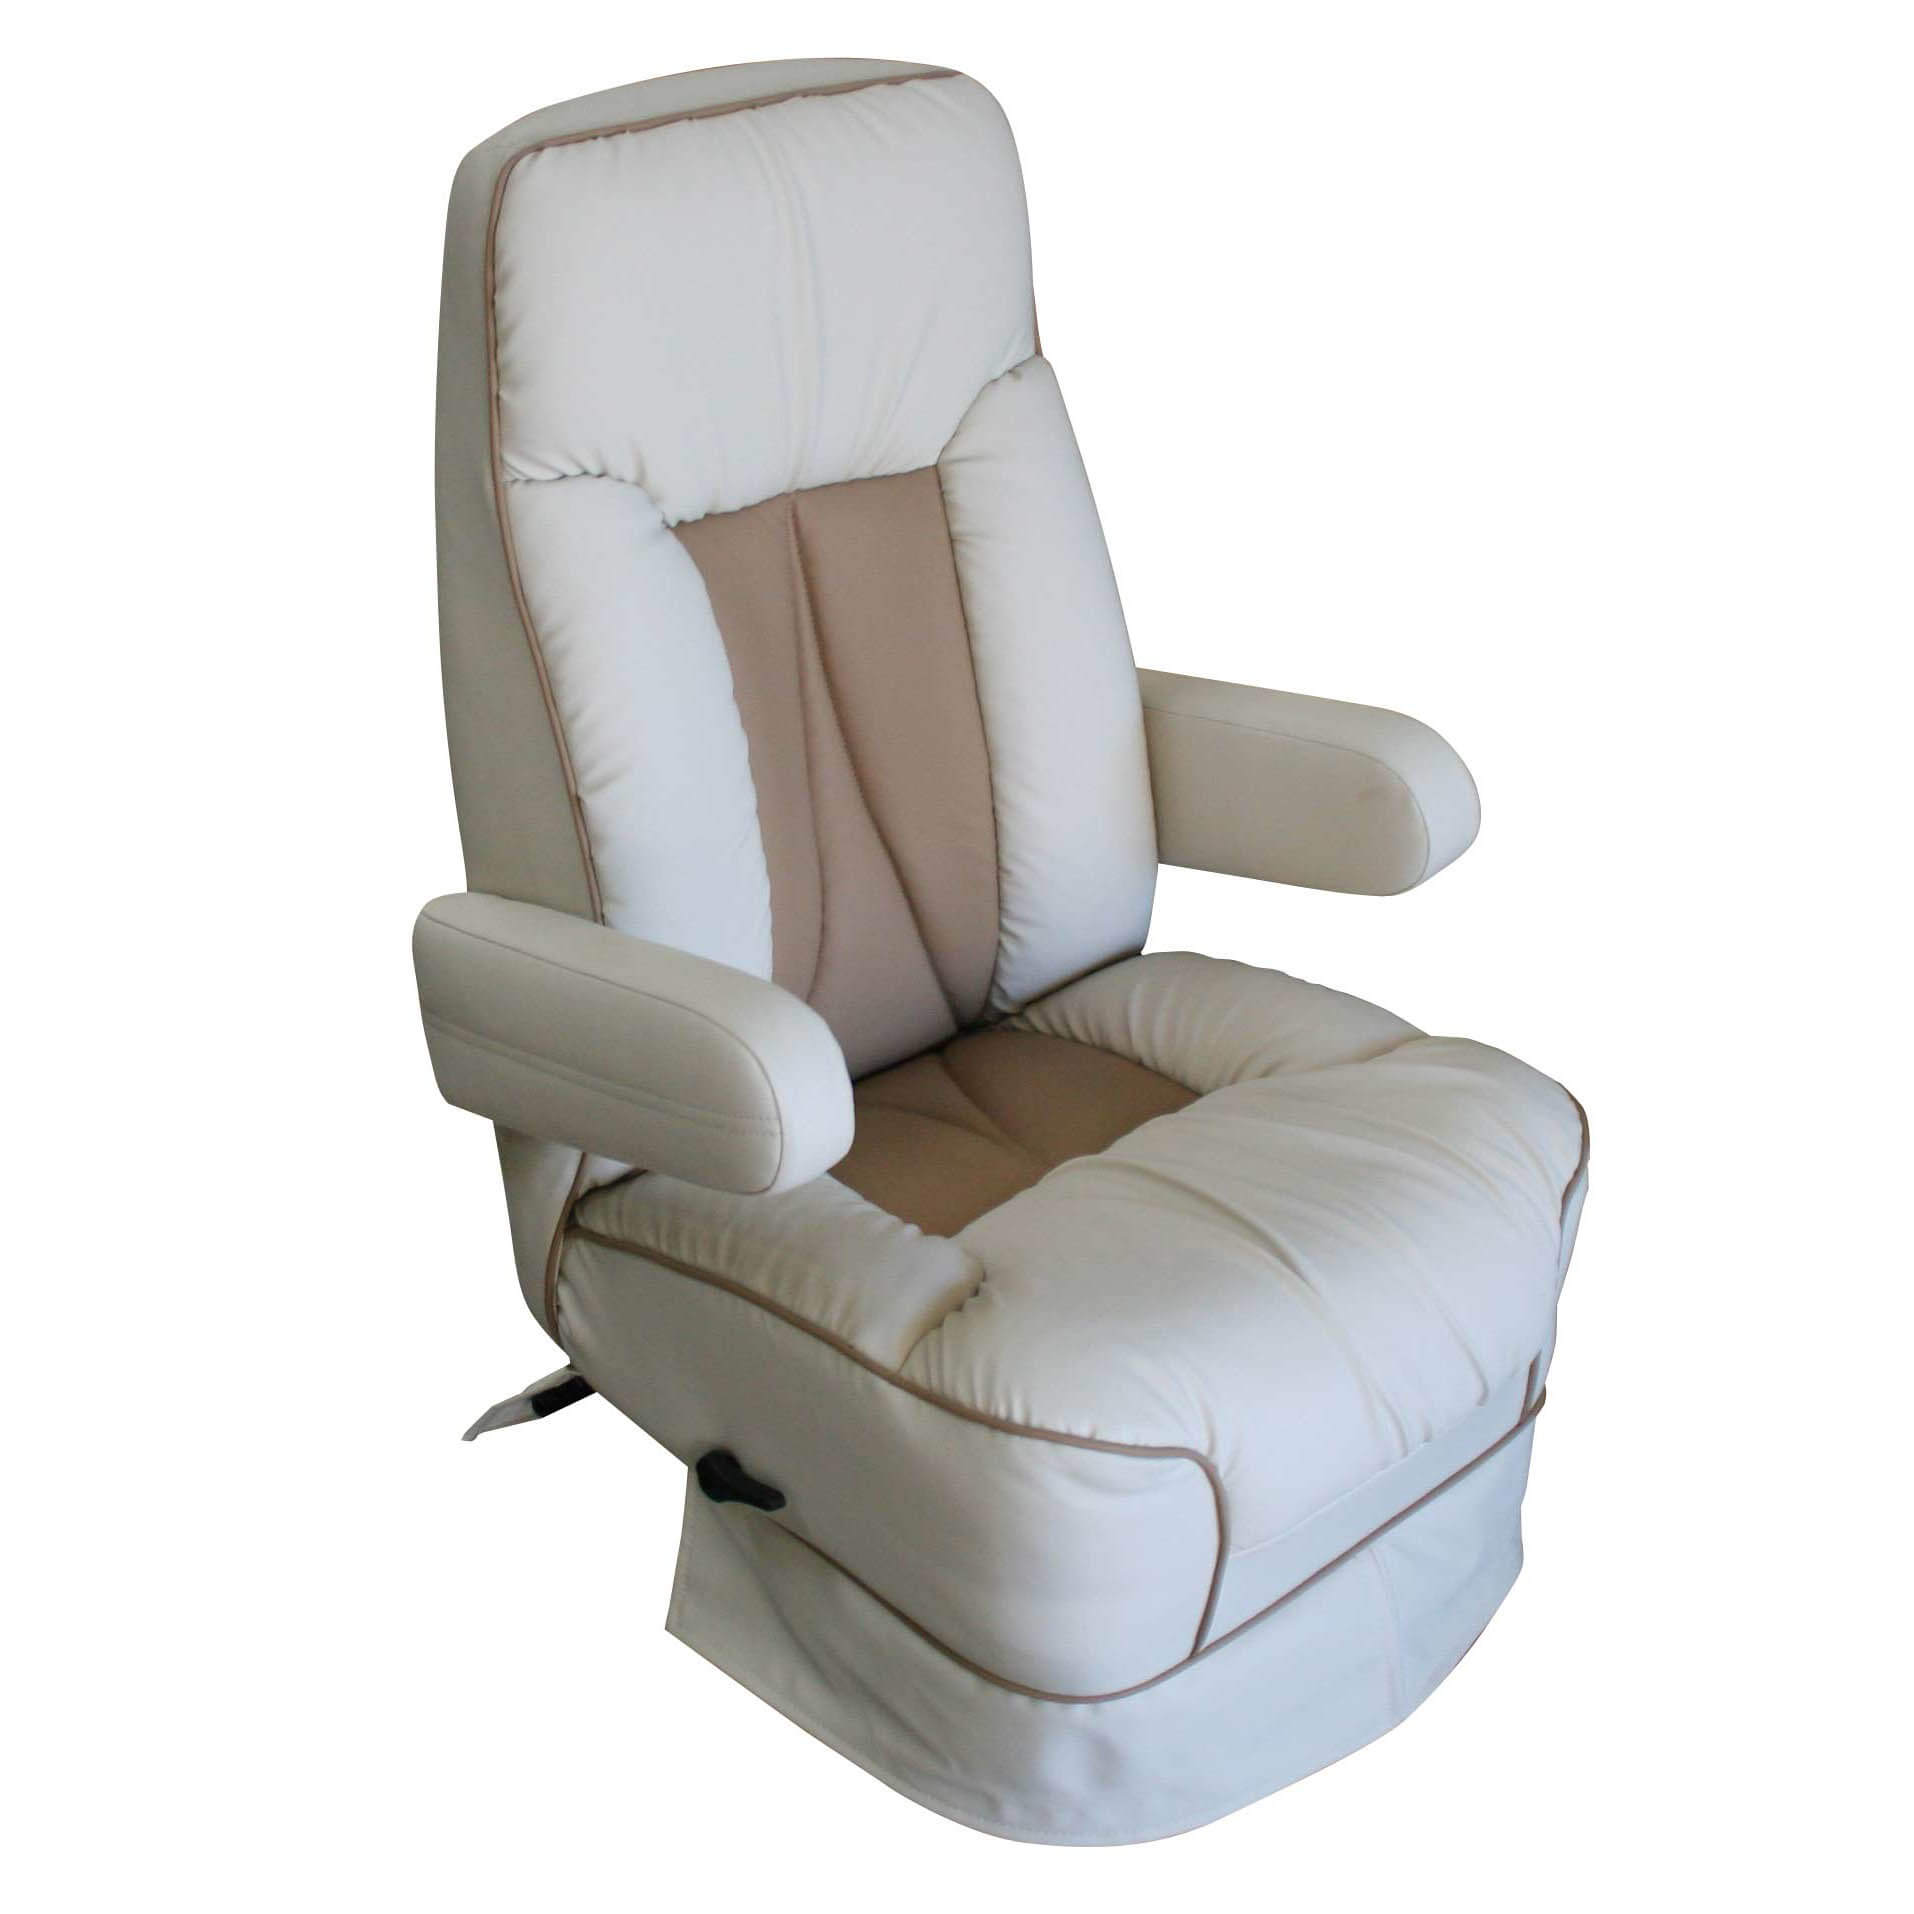 Ambassador rv furniture package rv seating for Rv furniture